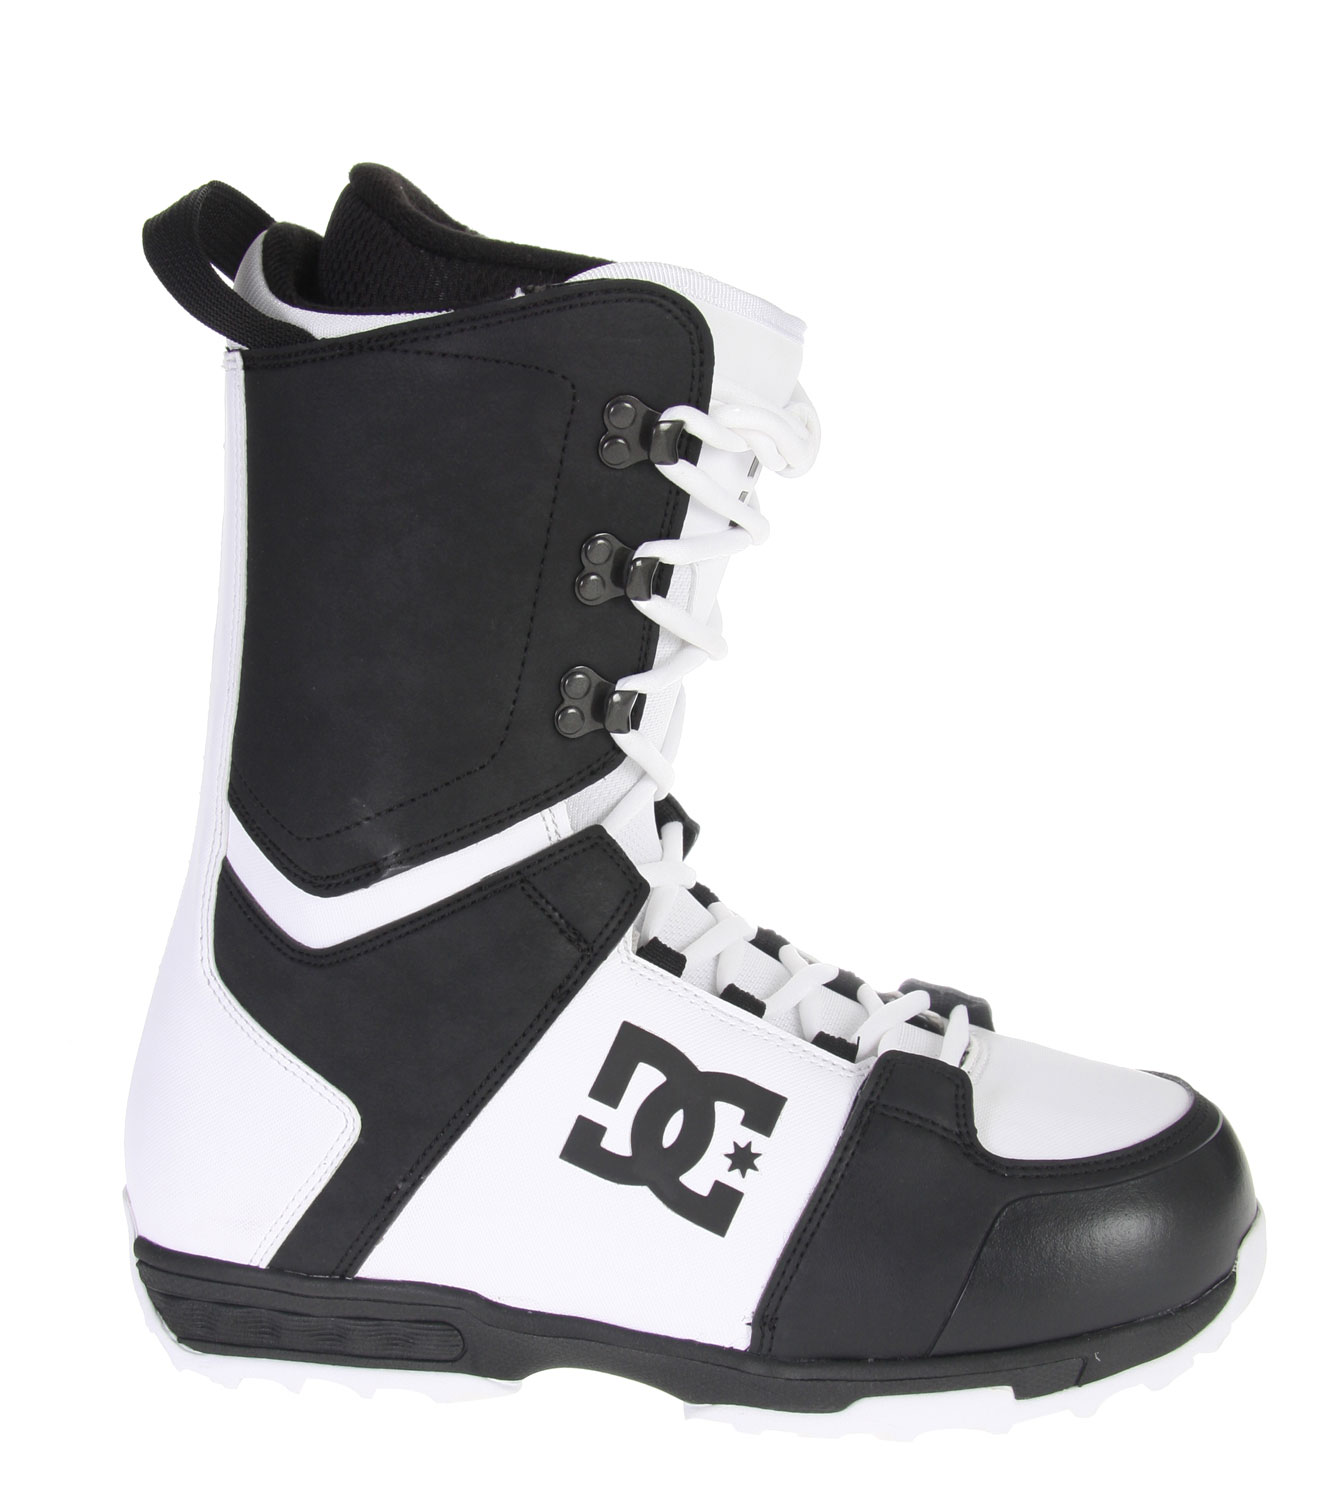 Snowboard A combination of DC influences. Rider inspired. Skate influenced. Performance driven. The Rogan maintains the right amount of flex, comfort, and support to allow riders to hit all spots on the mountain nomatter what the condition.Key Features of The DC Rogan Snowboard Boots: Water Resistant Synthetic Leather Upper Traditional Lace Ergonomically Engineered 3D Tongue Articulated Upper Cuff Internal Ankle Harness Welded Backstay Molded EVA Midsole Functional Sole Design Flex: 6 - $104.95